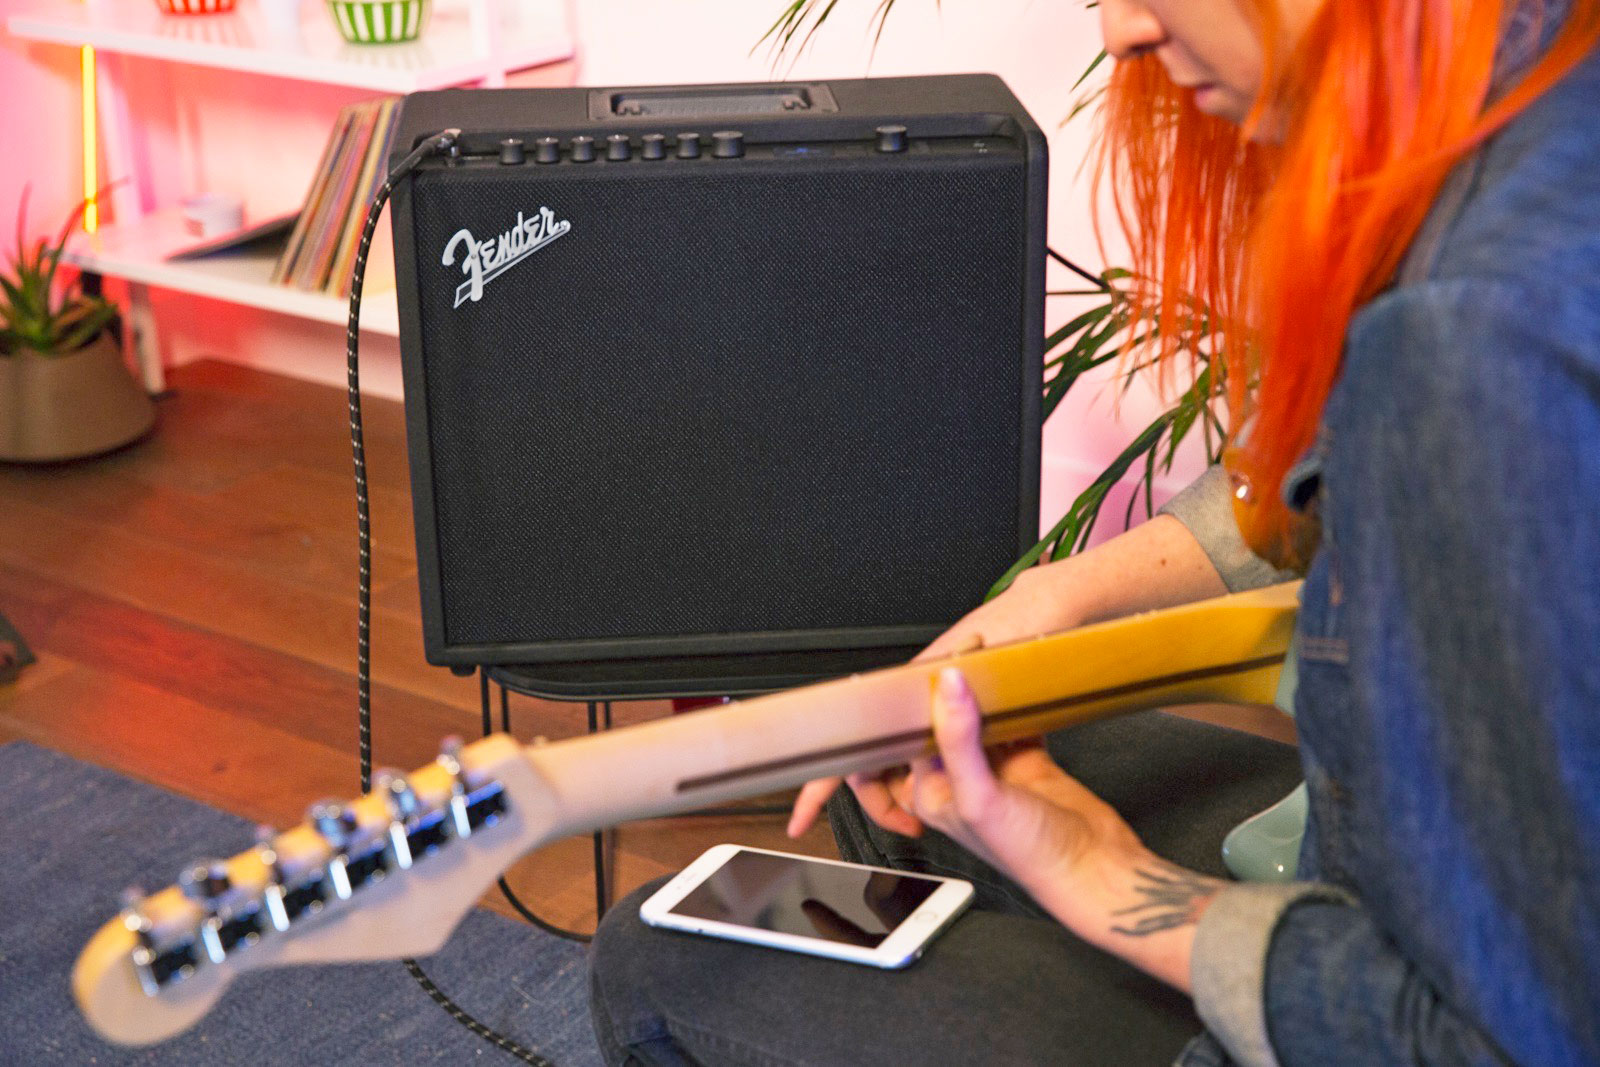 Fender's new guitar amps can be fine-tuned from your phone